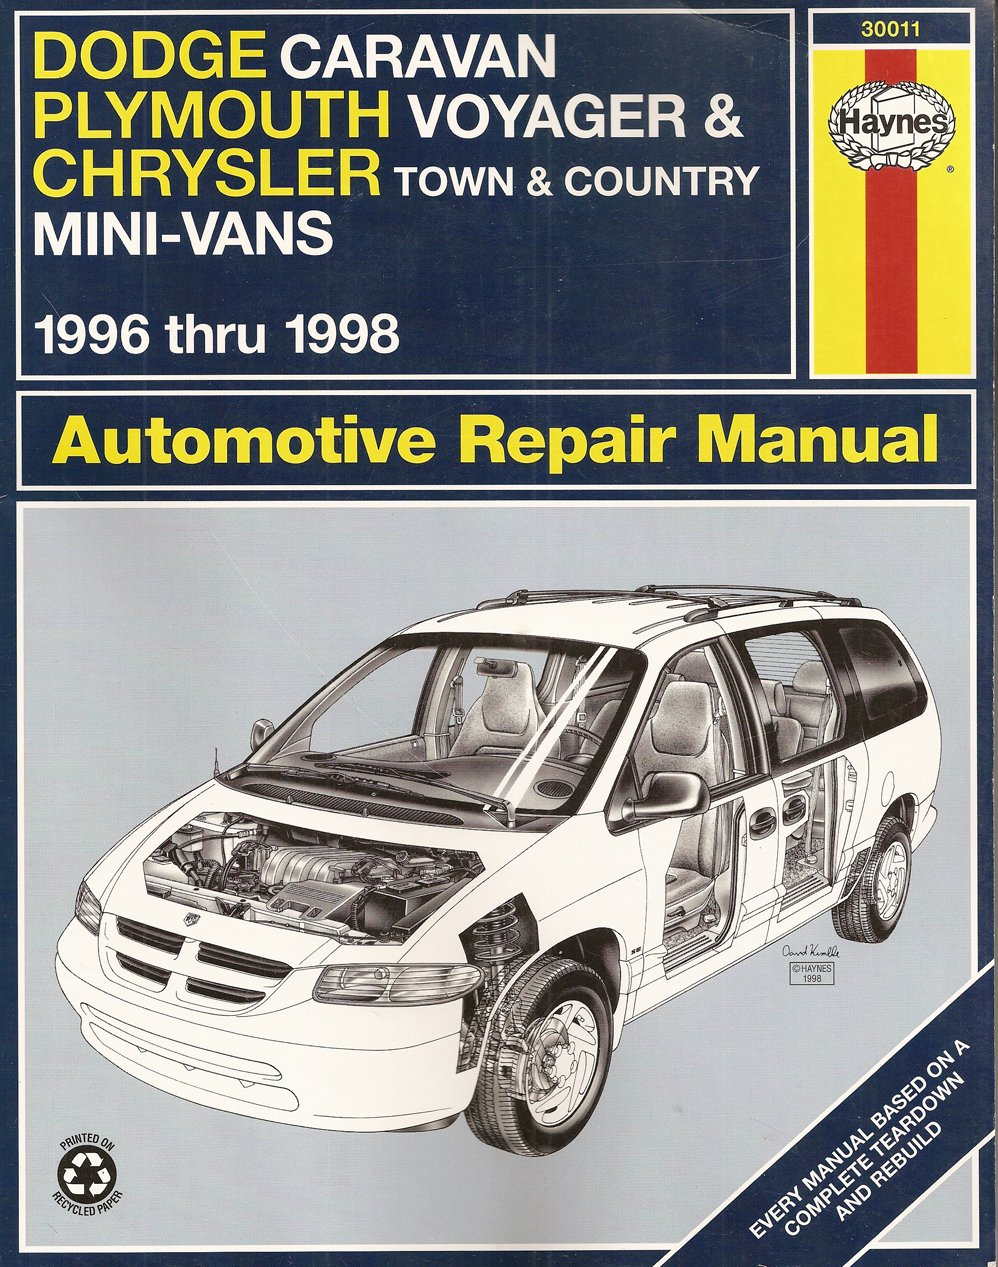 Dodge Caravan, Plymouth Voyager, Chrysler Town & Country Mini-Vans: 1996  thru 1998 (Haynes Automotive Repair Manuals): L. Alan Ledoux, John Harold  Haynes: ...